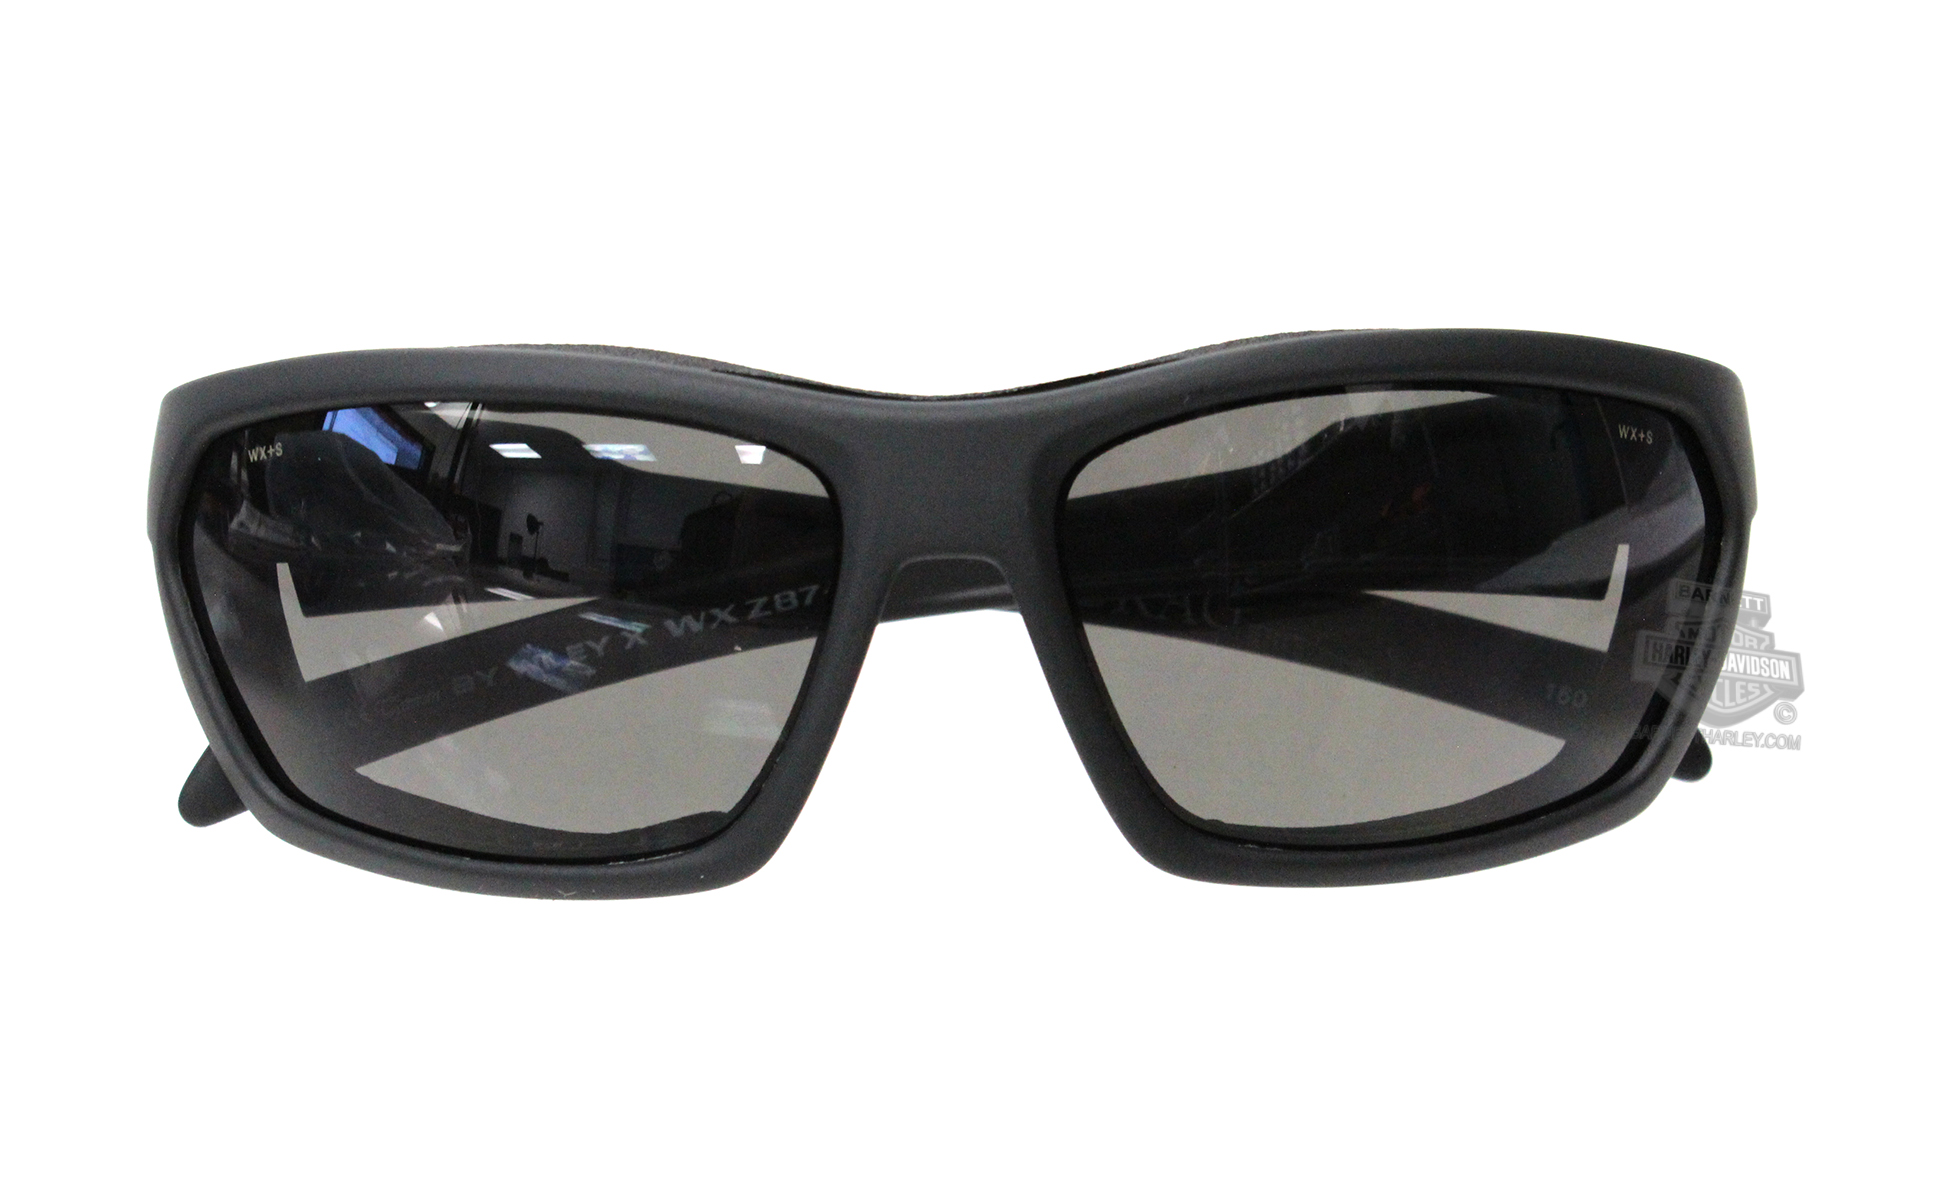 a7e31777dab ... Harley-Davidson® HD Drag Smoke Grey Lens in a Matte Black Frame  Sunglasses by Wiley X®. Tap to expand